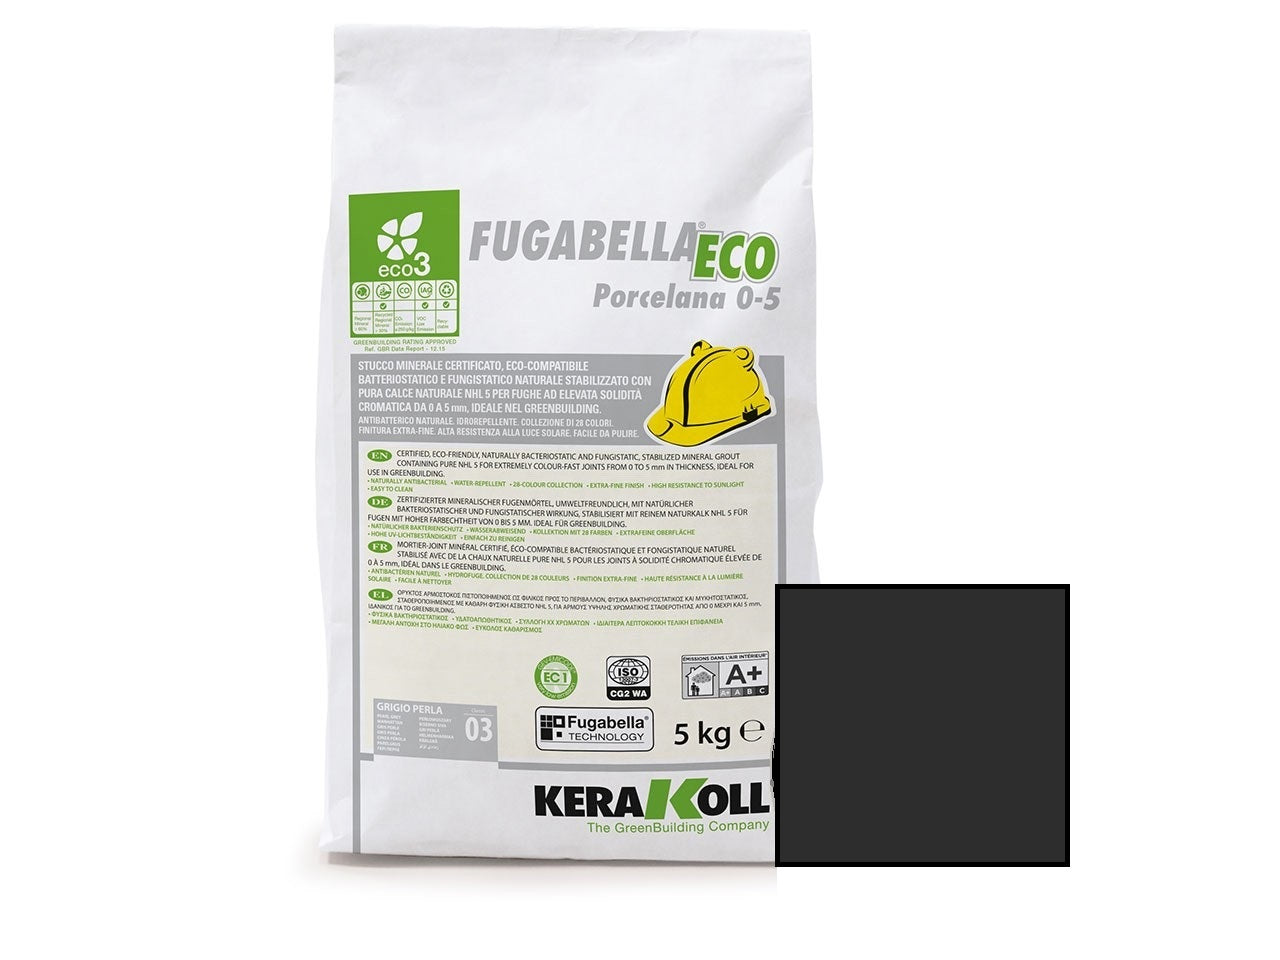 Kerakoll Fugabella Eco Flexible Grout Anthracite 5kg